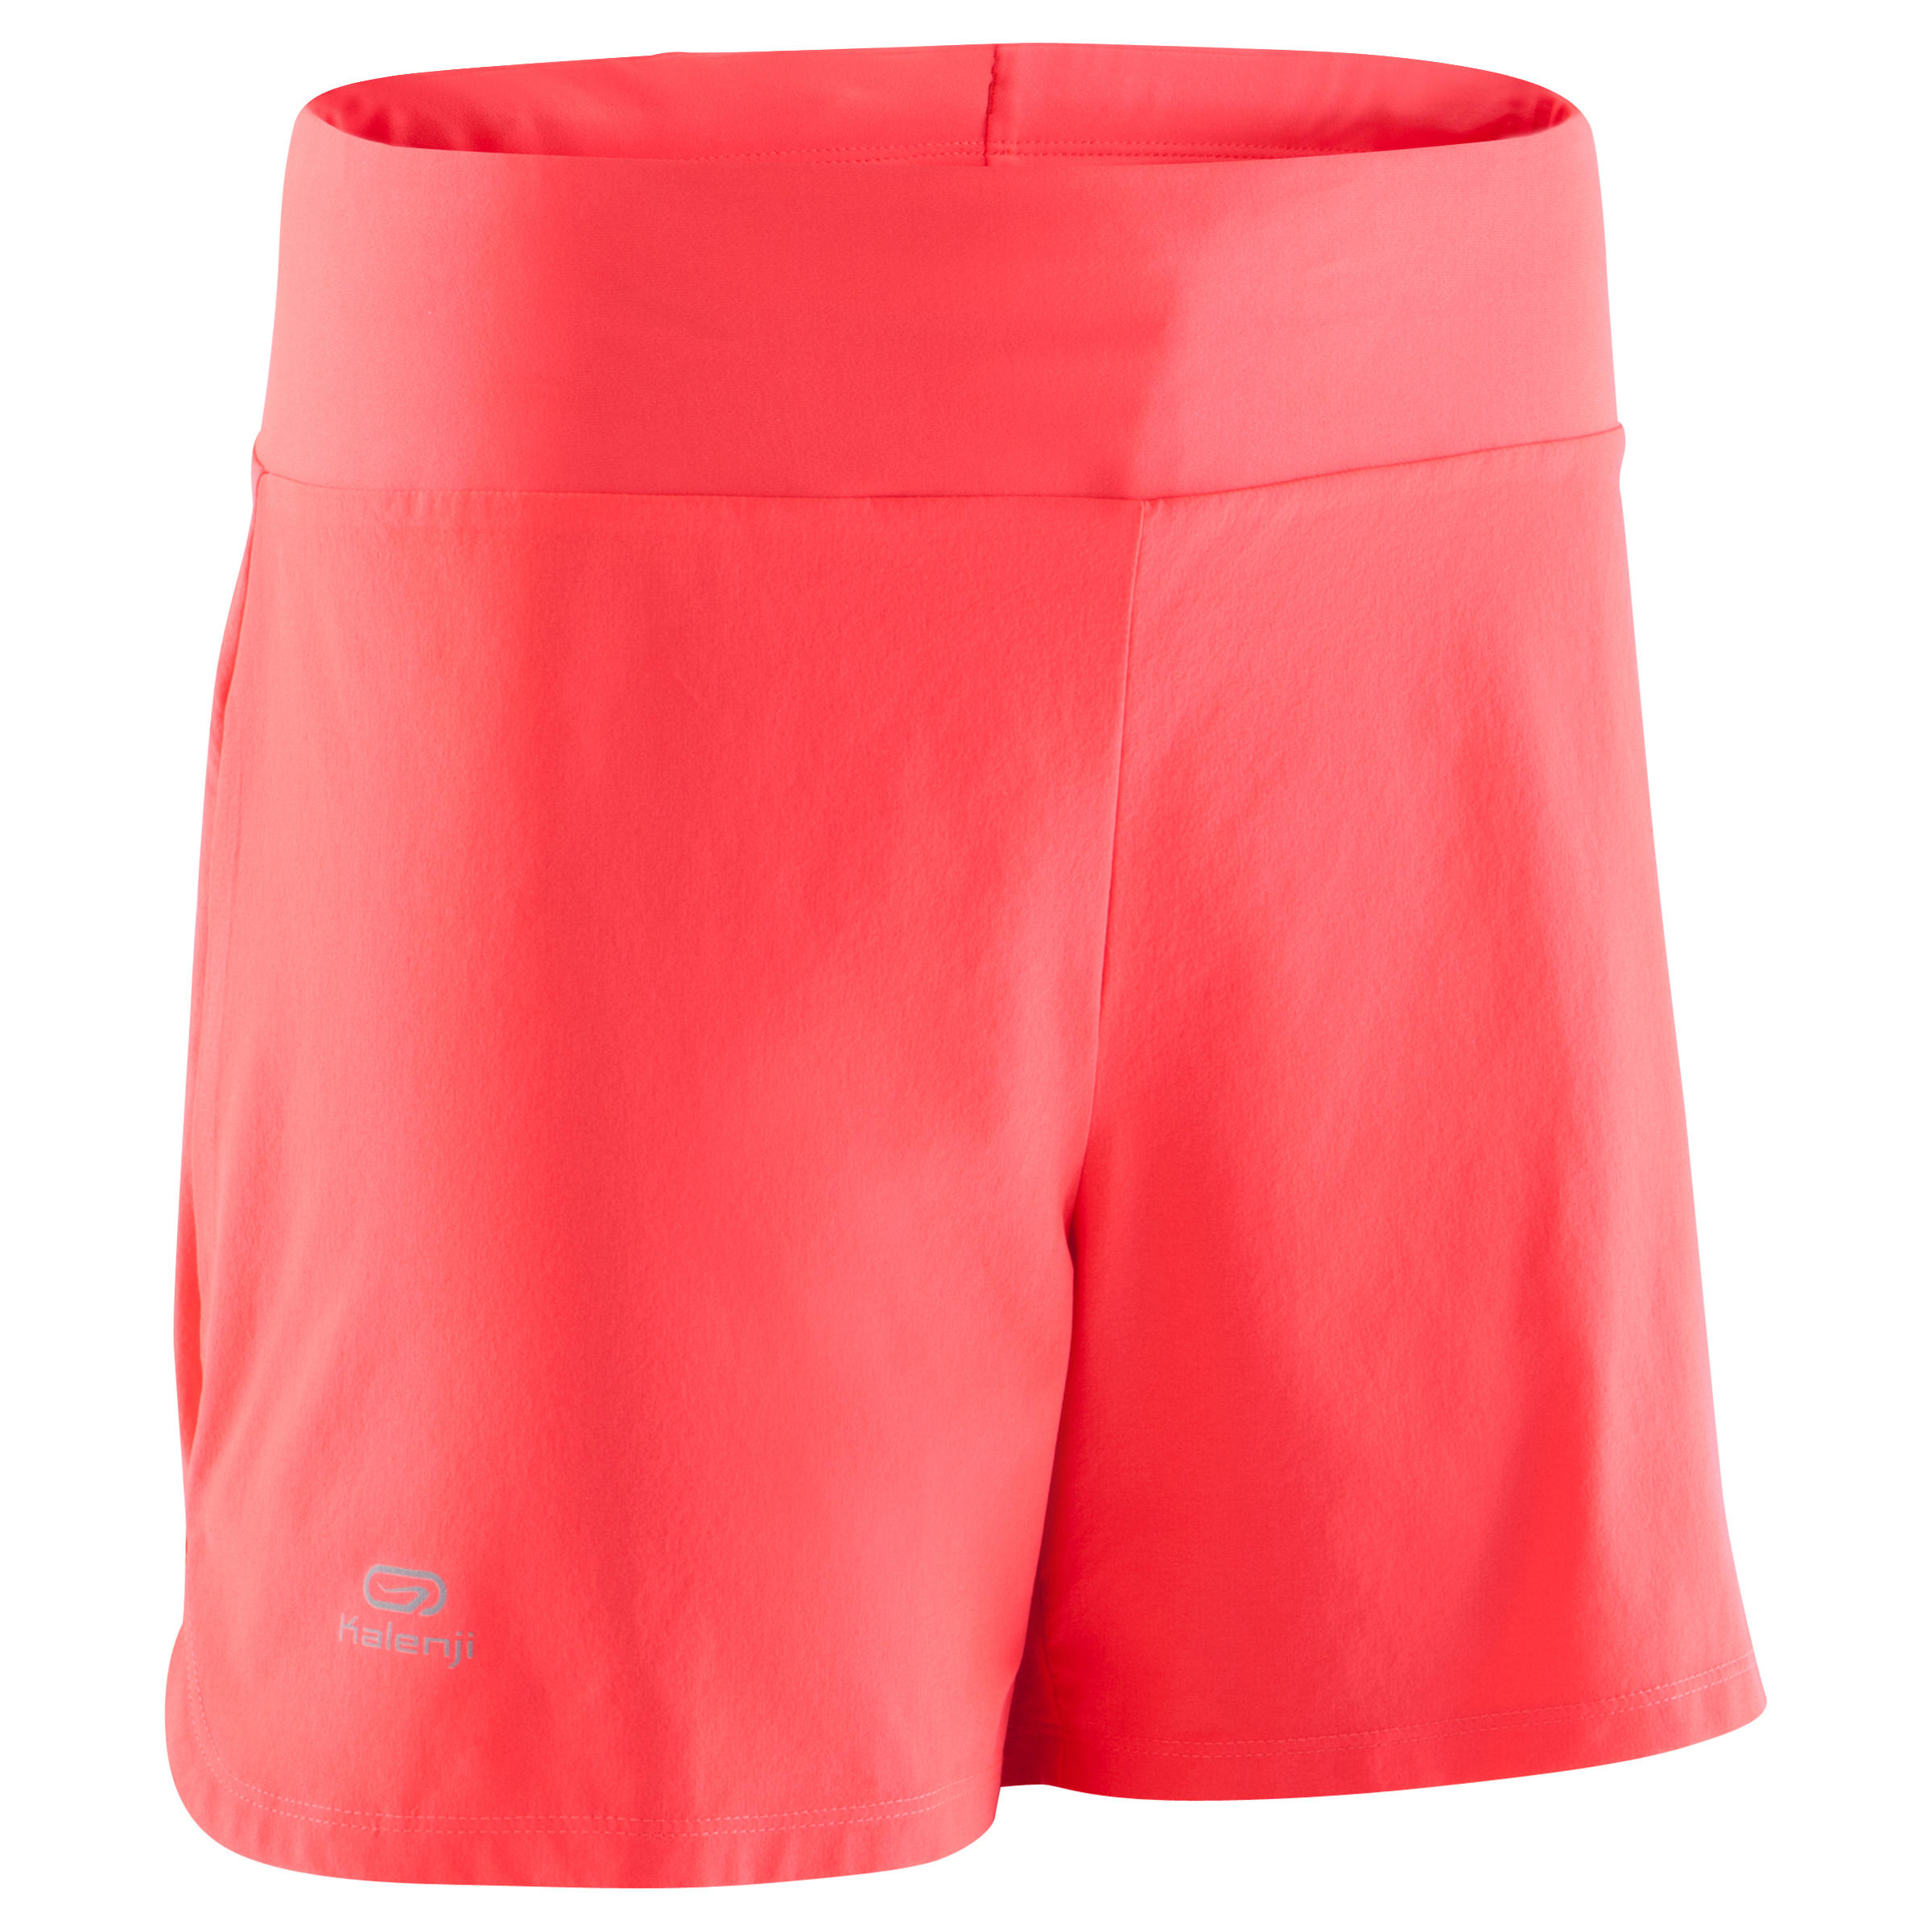 RUN DRY WOMEN'S RUNNING SHORTS - CORAL